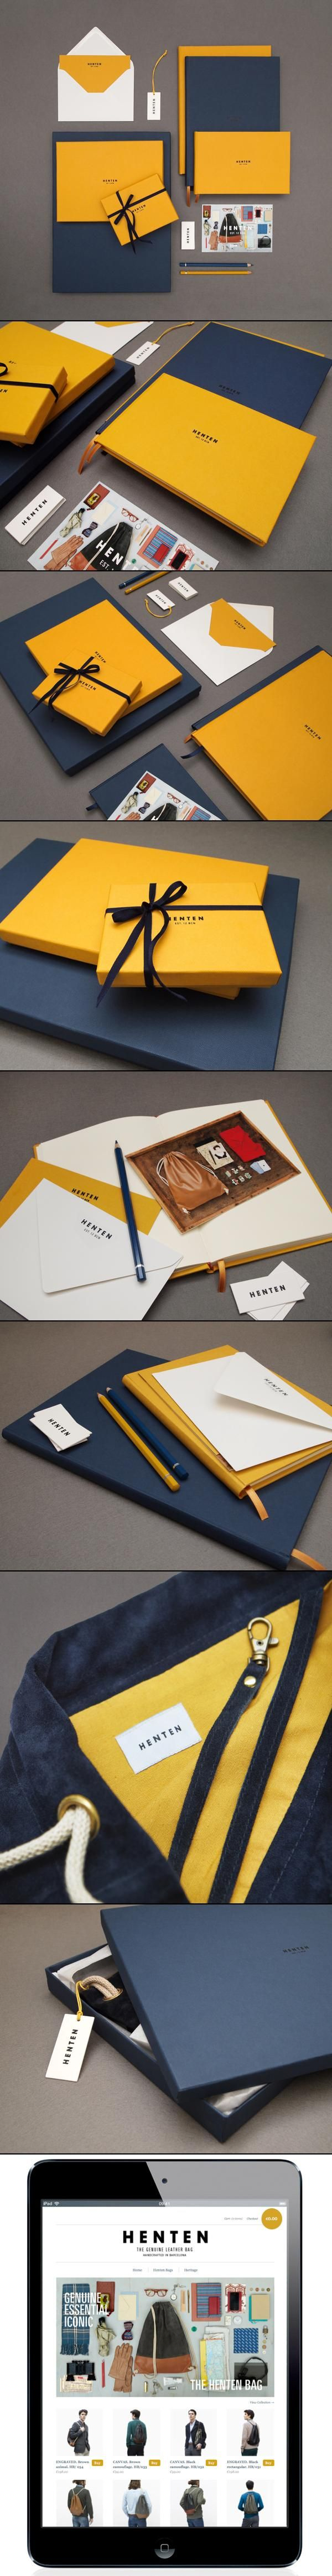 How colour becomes a big part of the identity. visual identity | HENTEN. Corporate Identity / Packaging